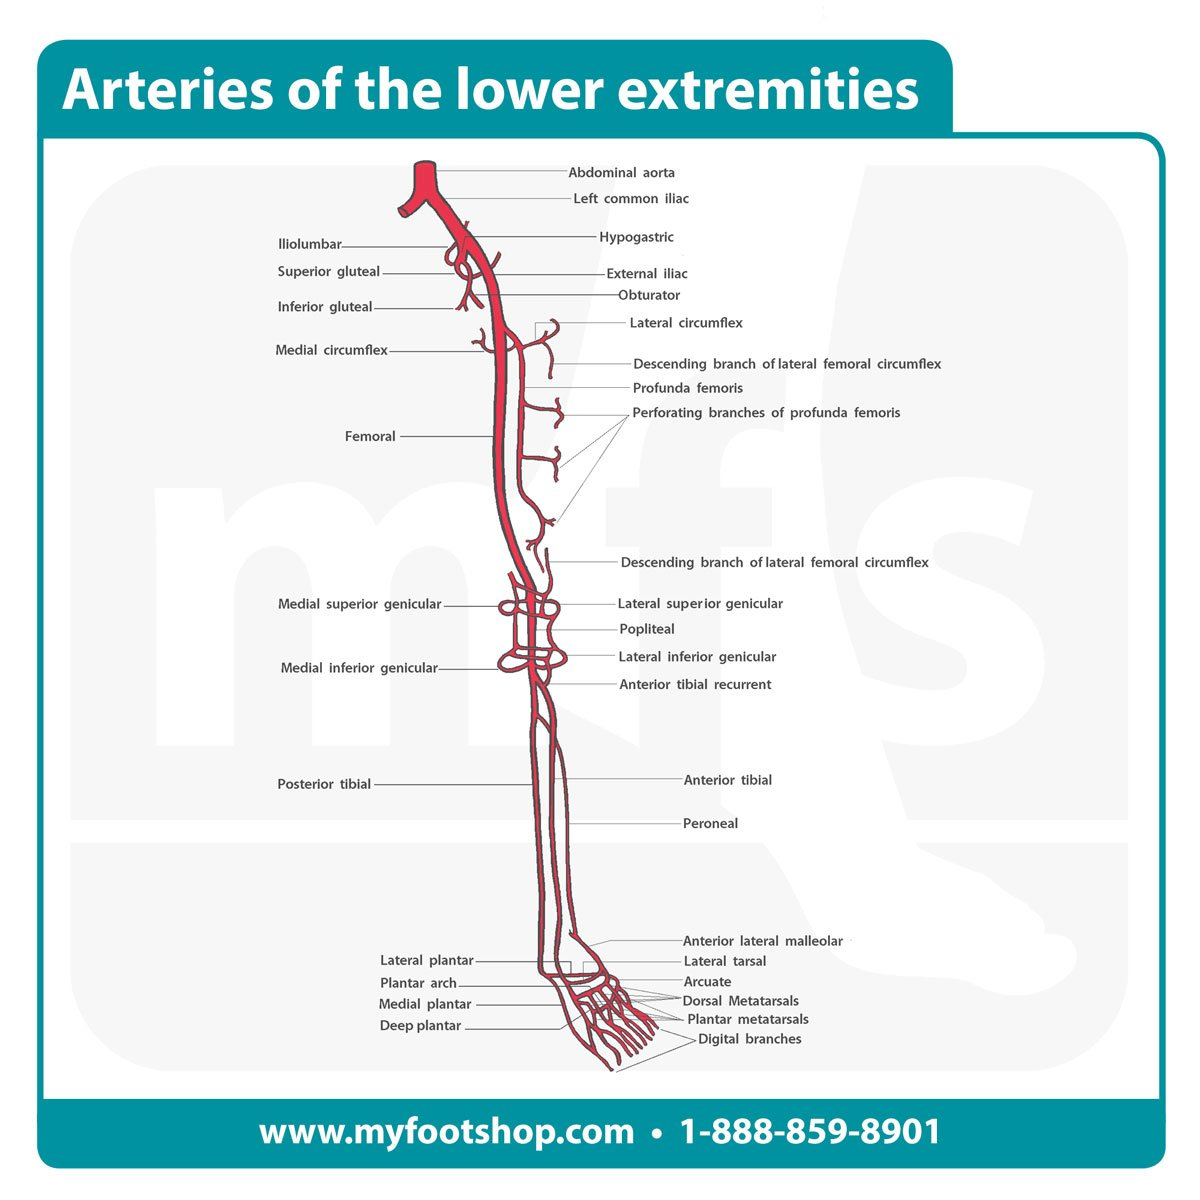 Image of the arteries of the lower extremities